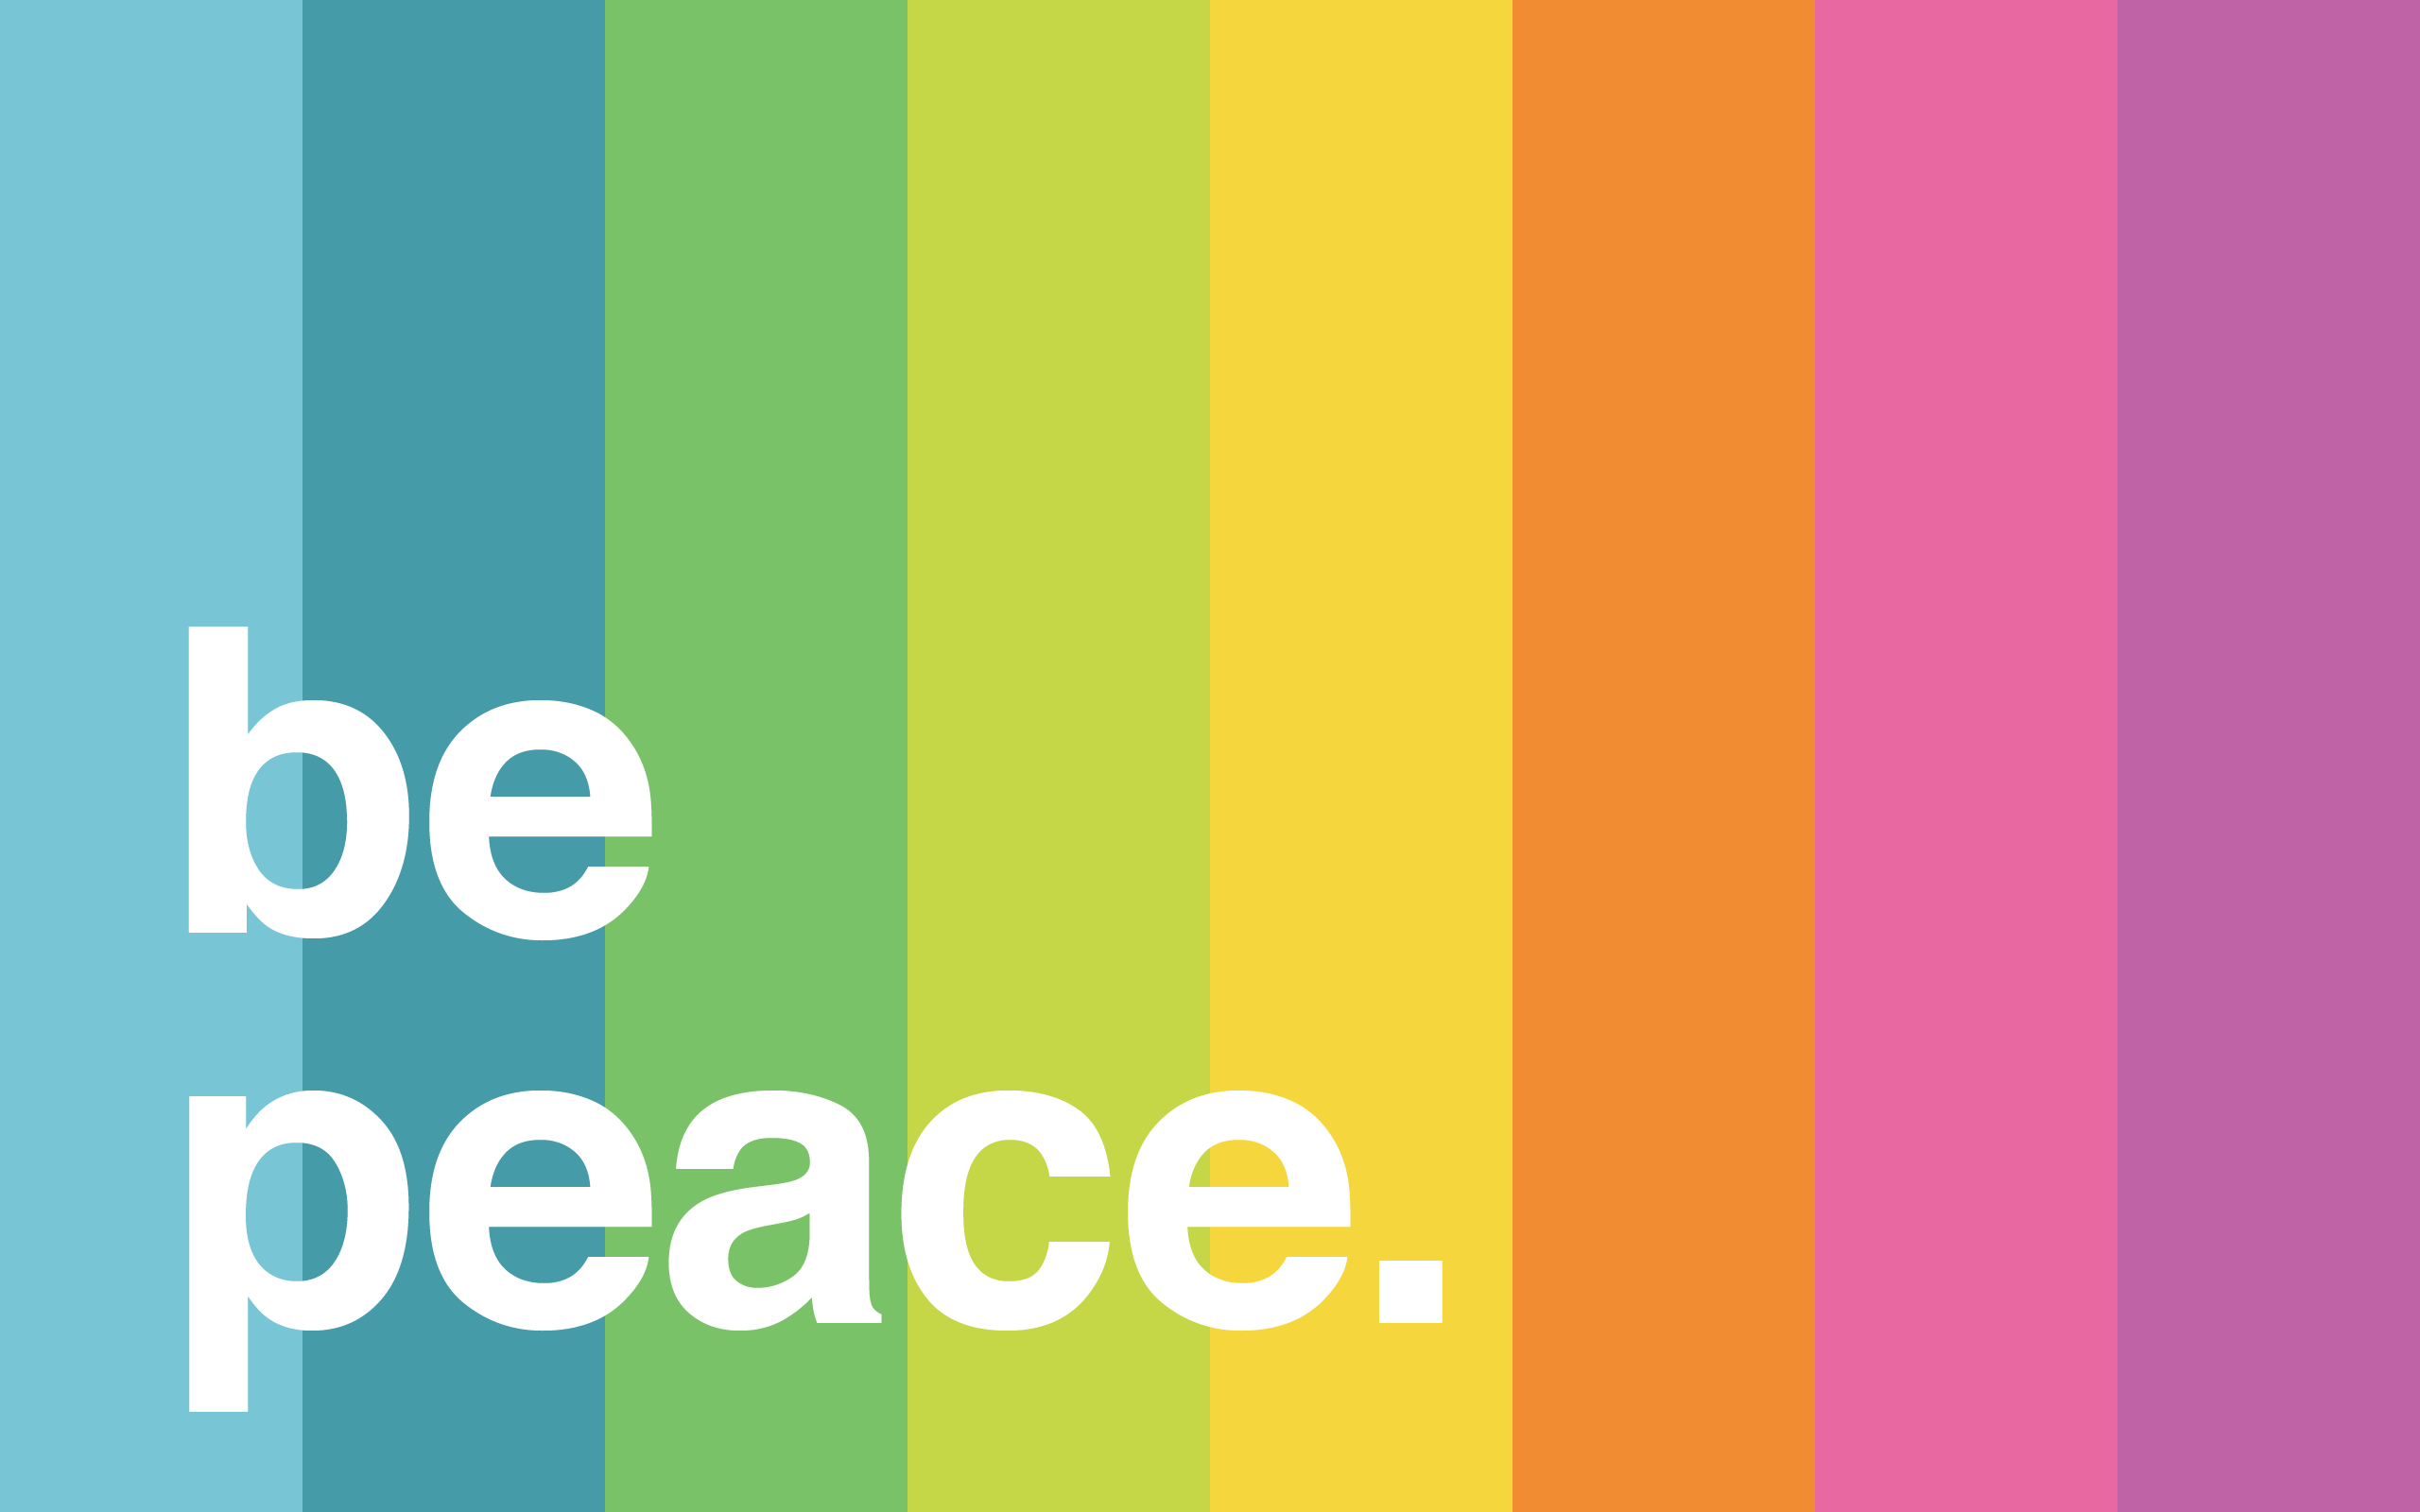 HDQ Creative Peace Pictures, 2560x1600, Dorothy Carrasco